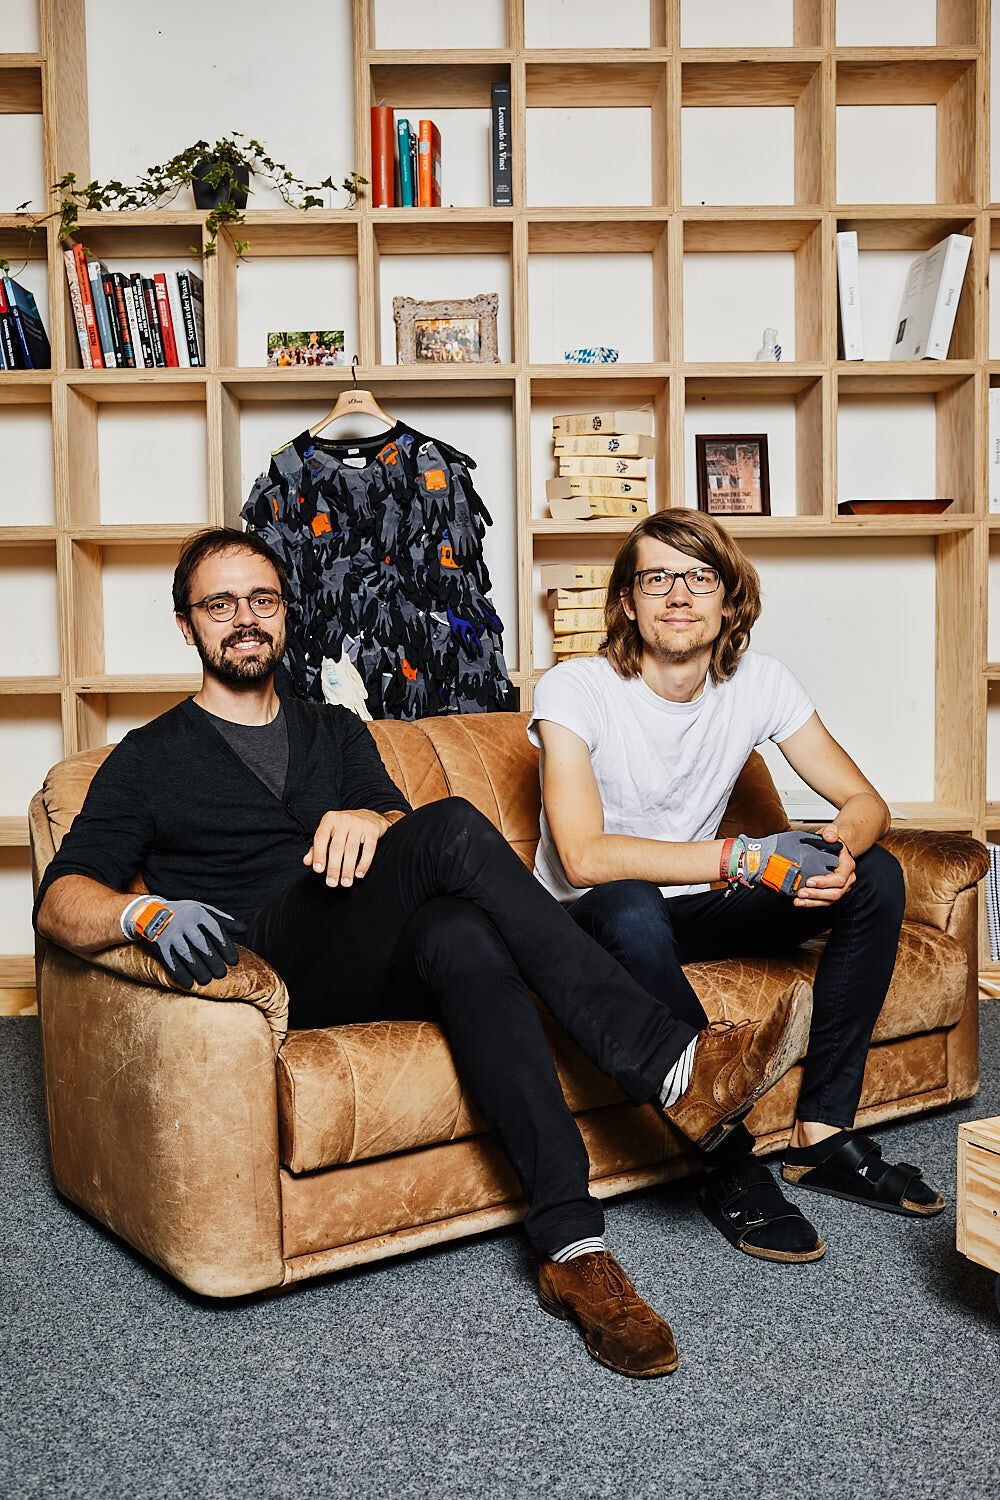 Thomas Kirchner and Paul Günther, founders of Proglove, sitting on a leather sofa in front of a bookshelf